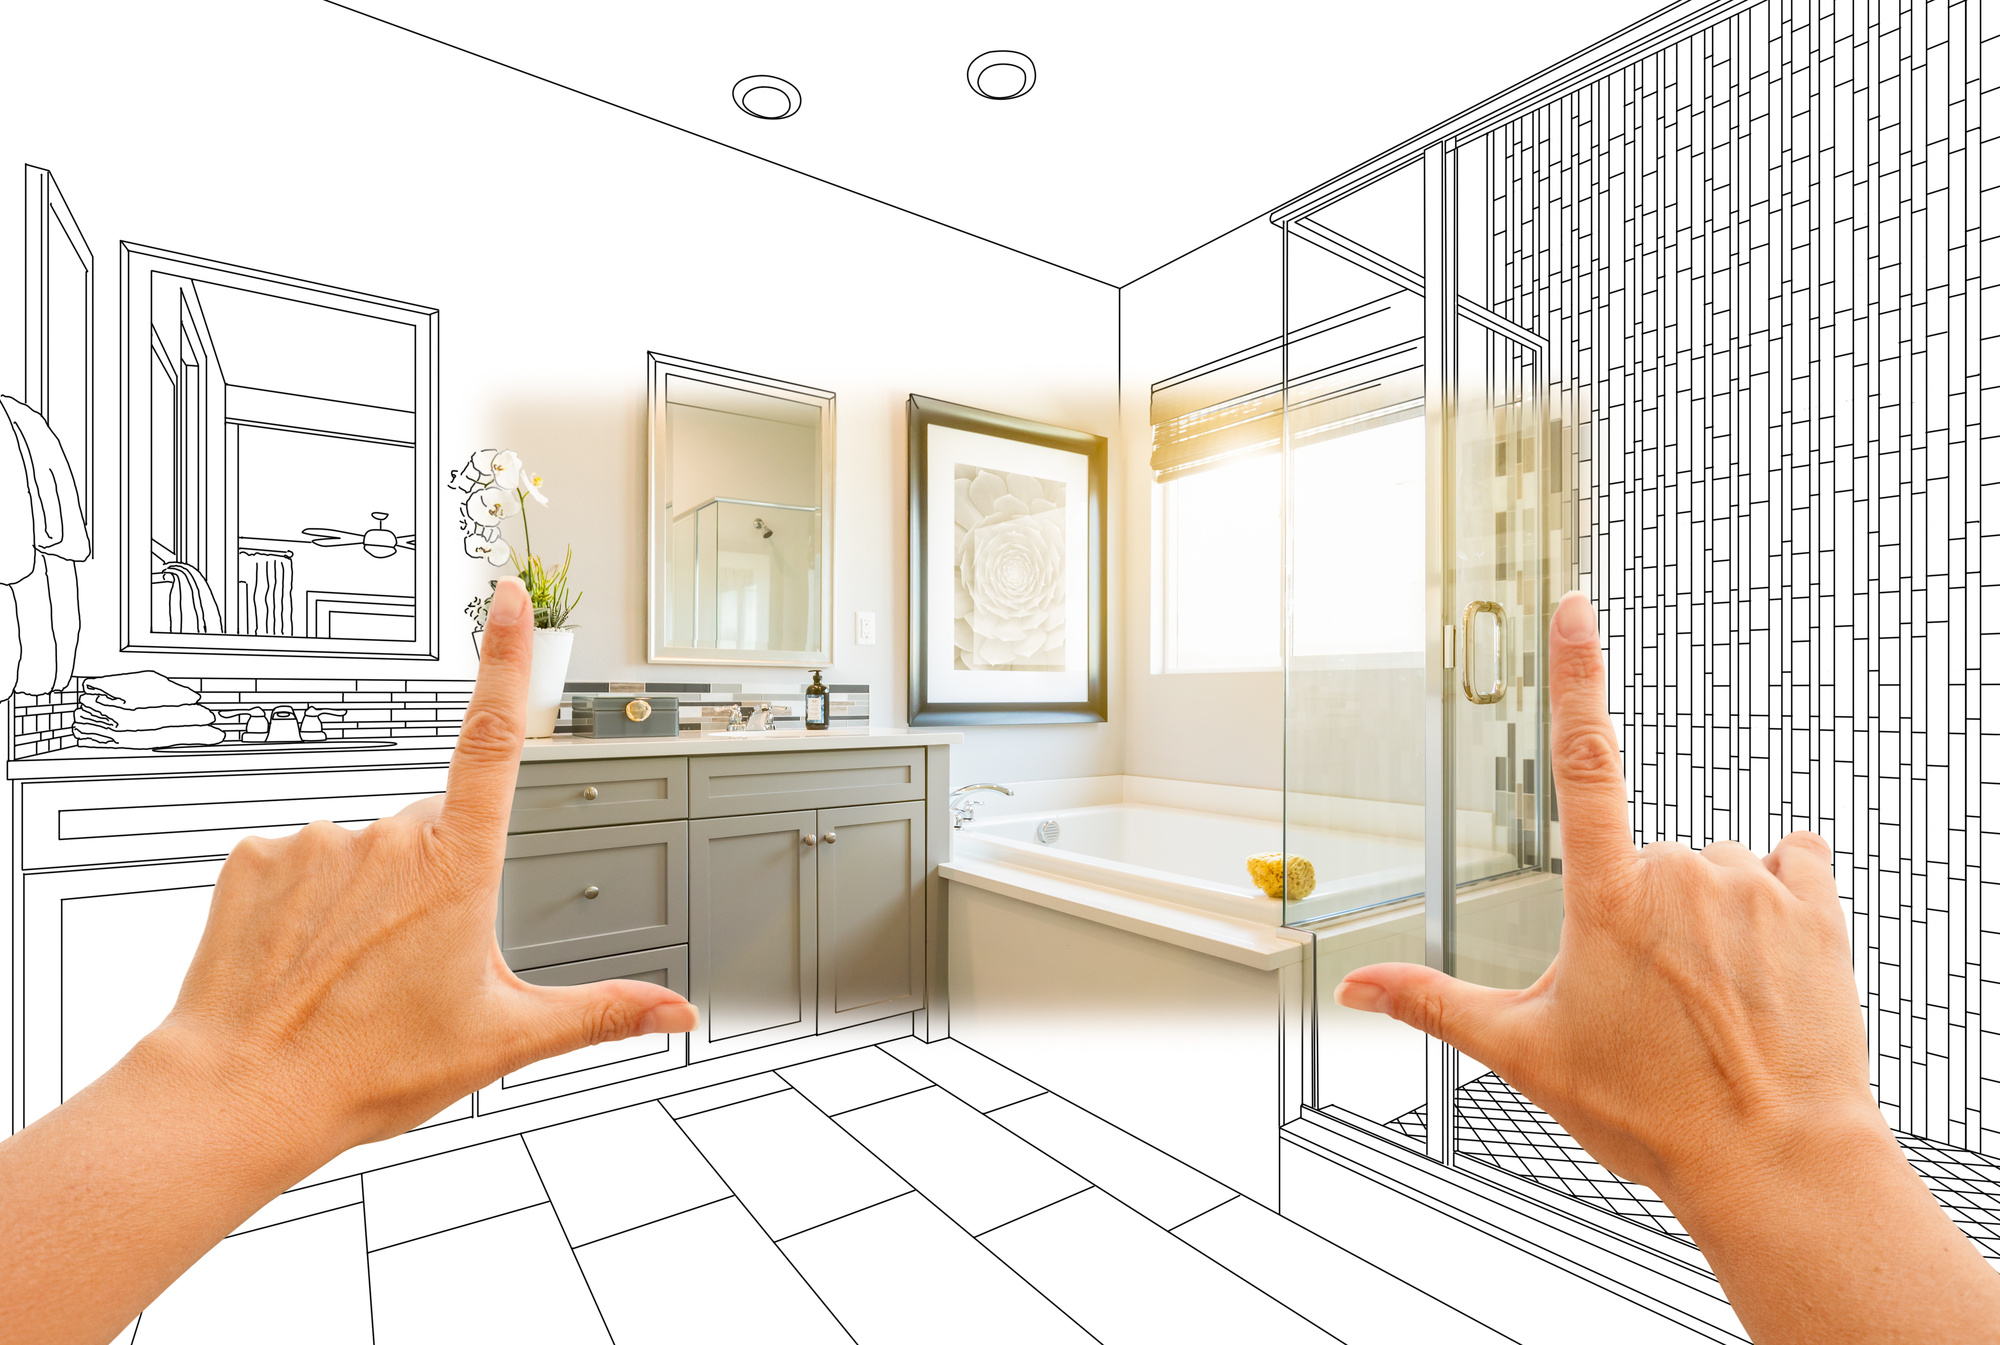 Which is Better: The Inset Bath or Freestanding Bath? How to Choose